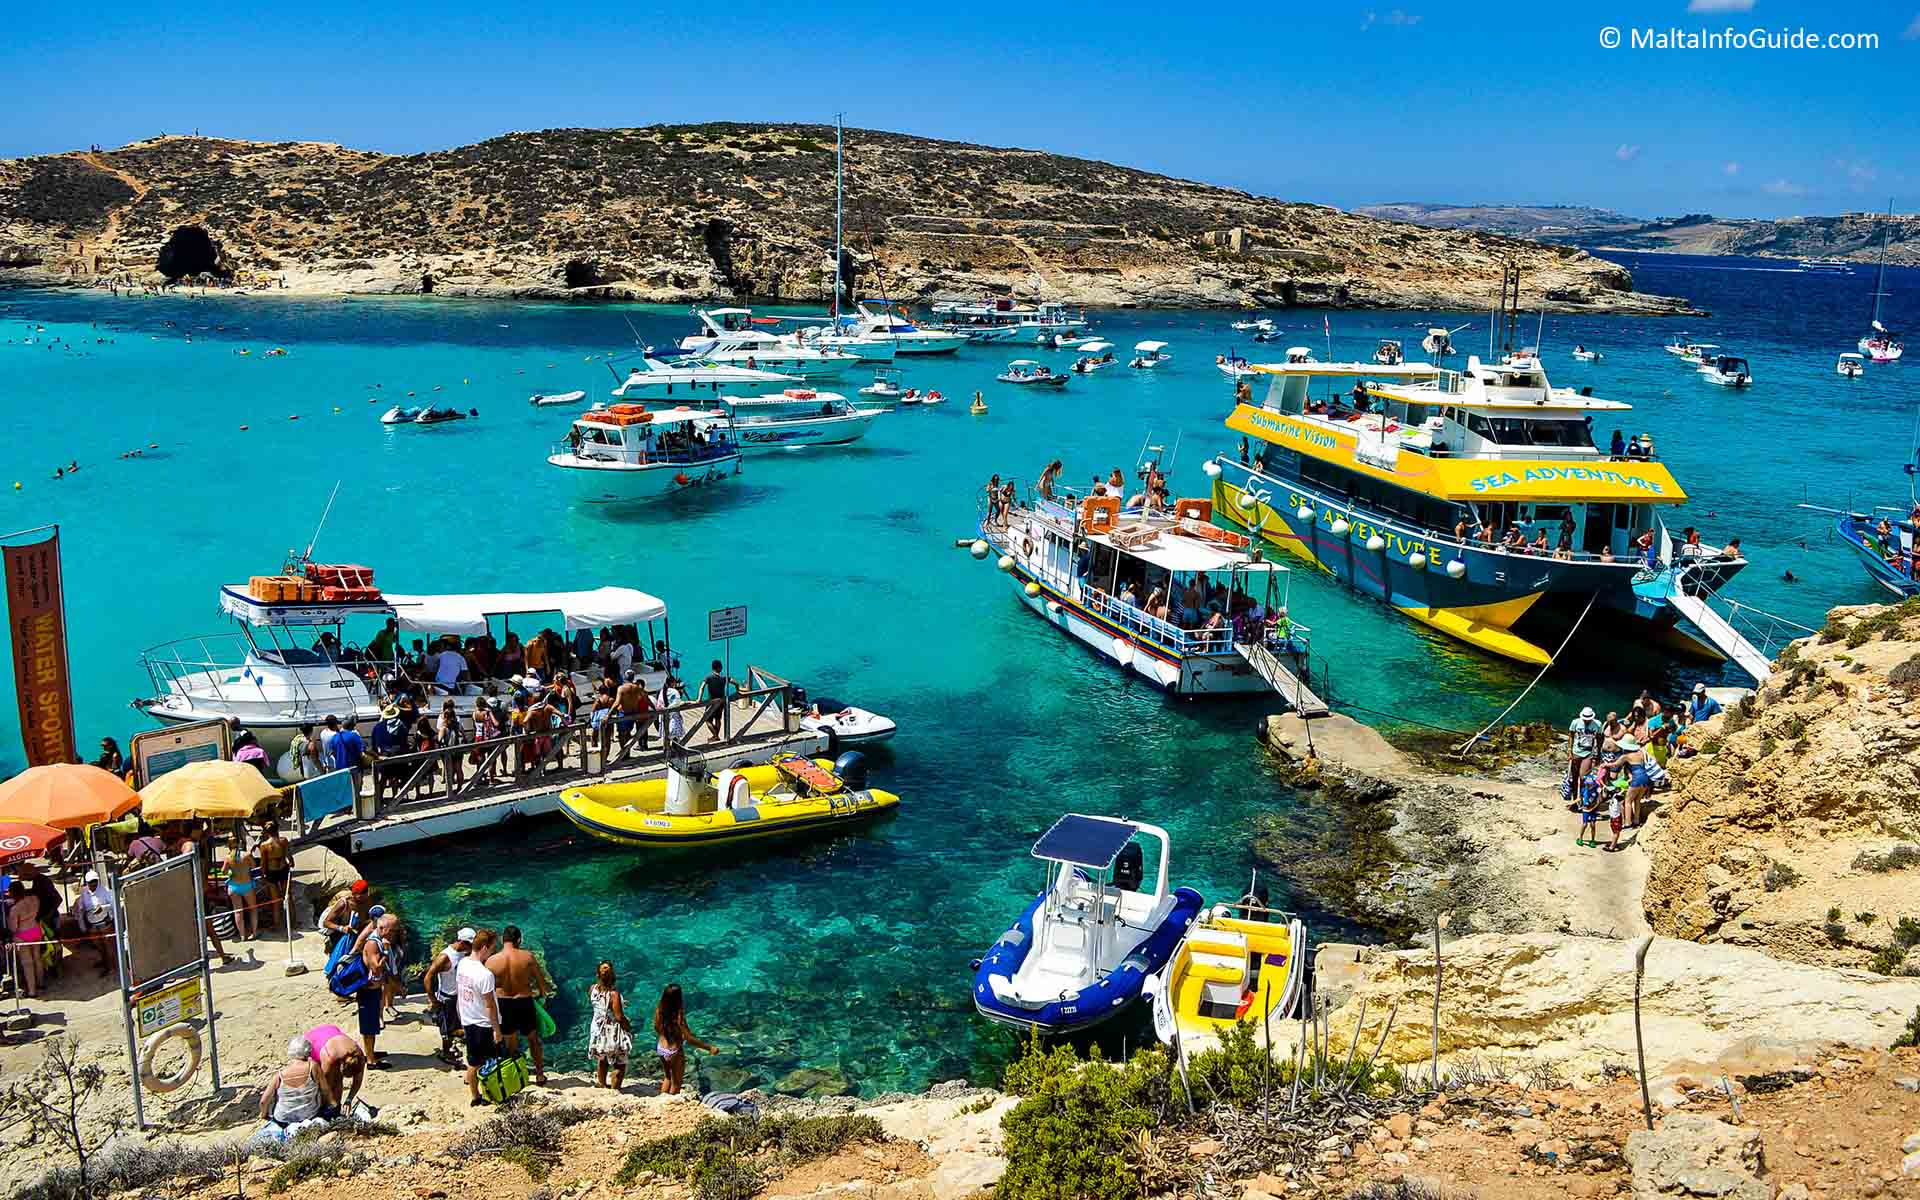 People visiting the Blue Lagoon Comino during summer